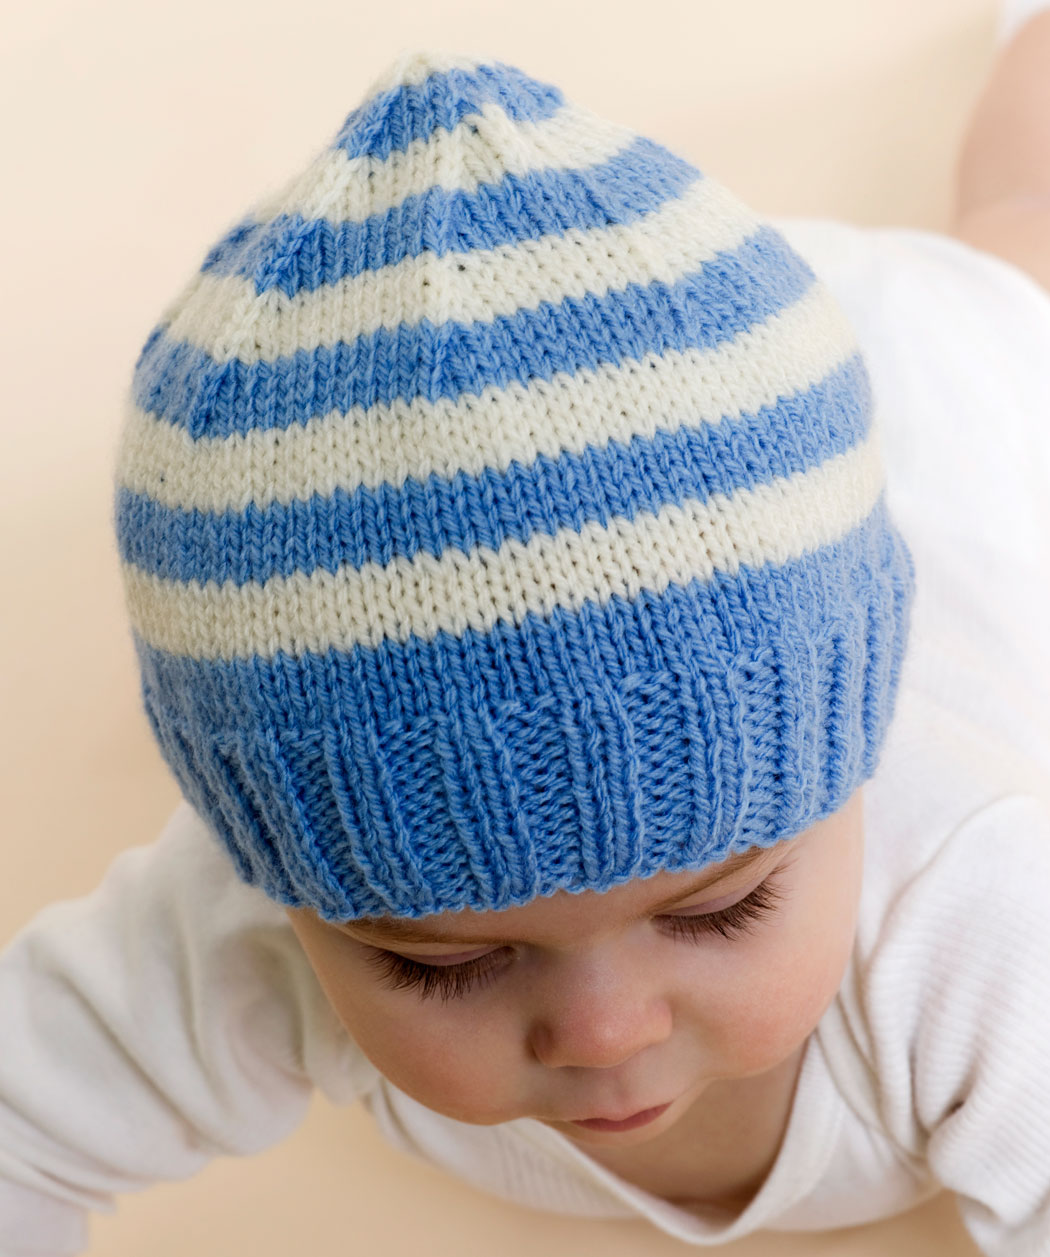 Kids Knit Hat Patterns : Knitting Hats   Tag Hats